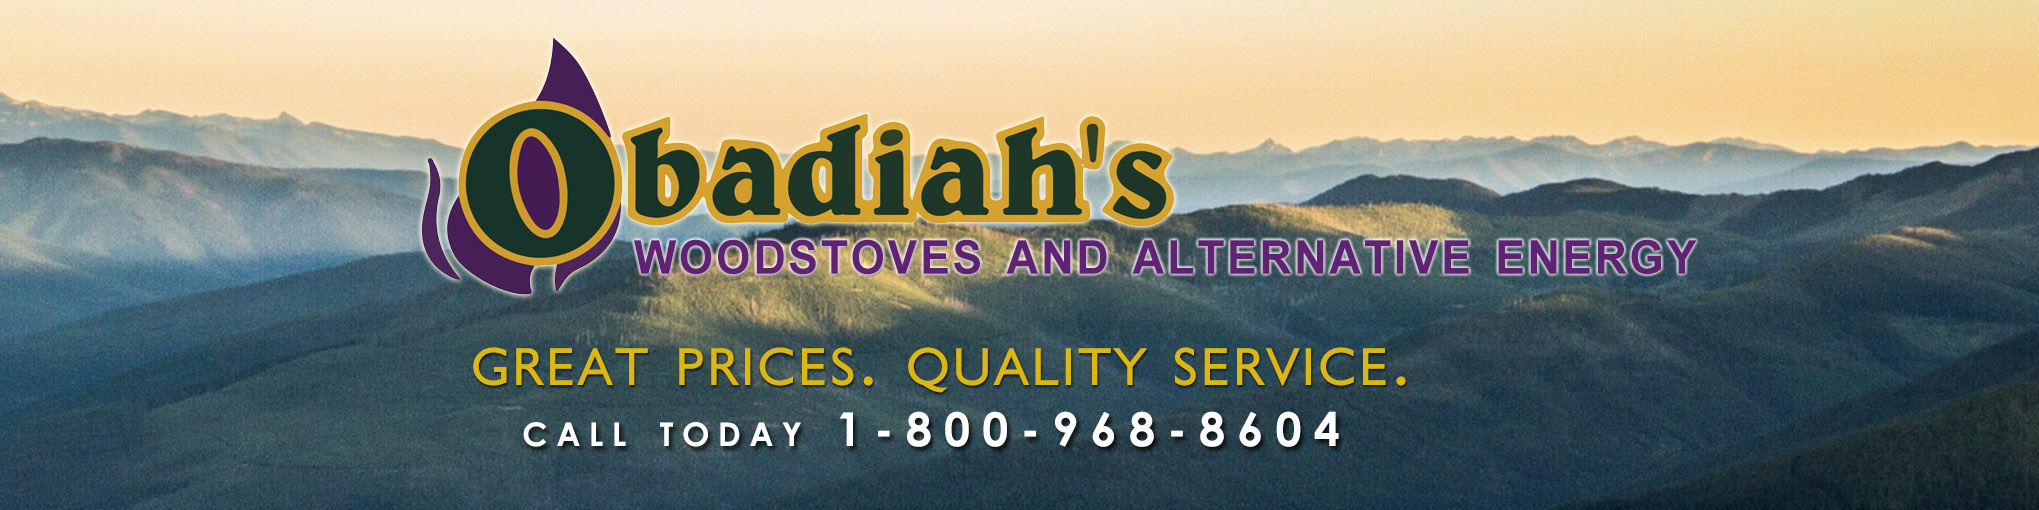 Obadiah's Woodstoves & Alternative Energy